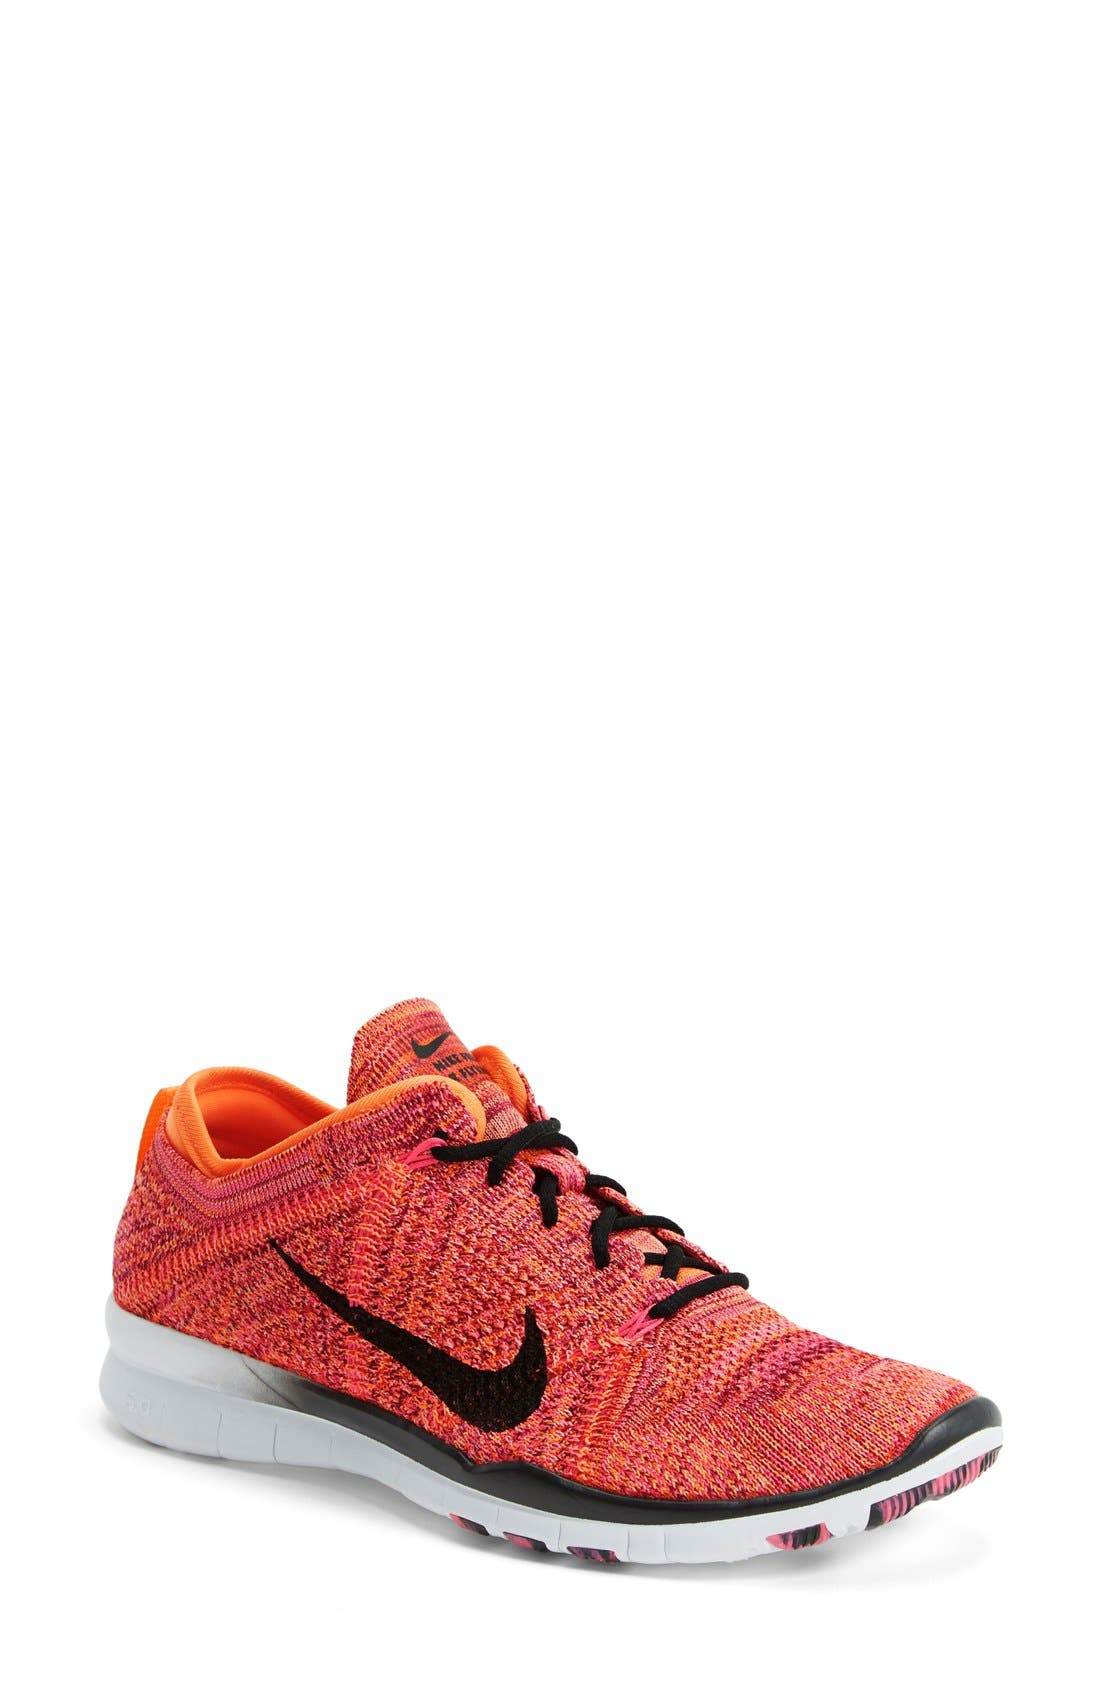 'Free Flyknit 5.0 TR' Training Shoe,                             Main thumbnail 15, color,